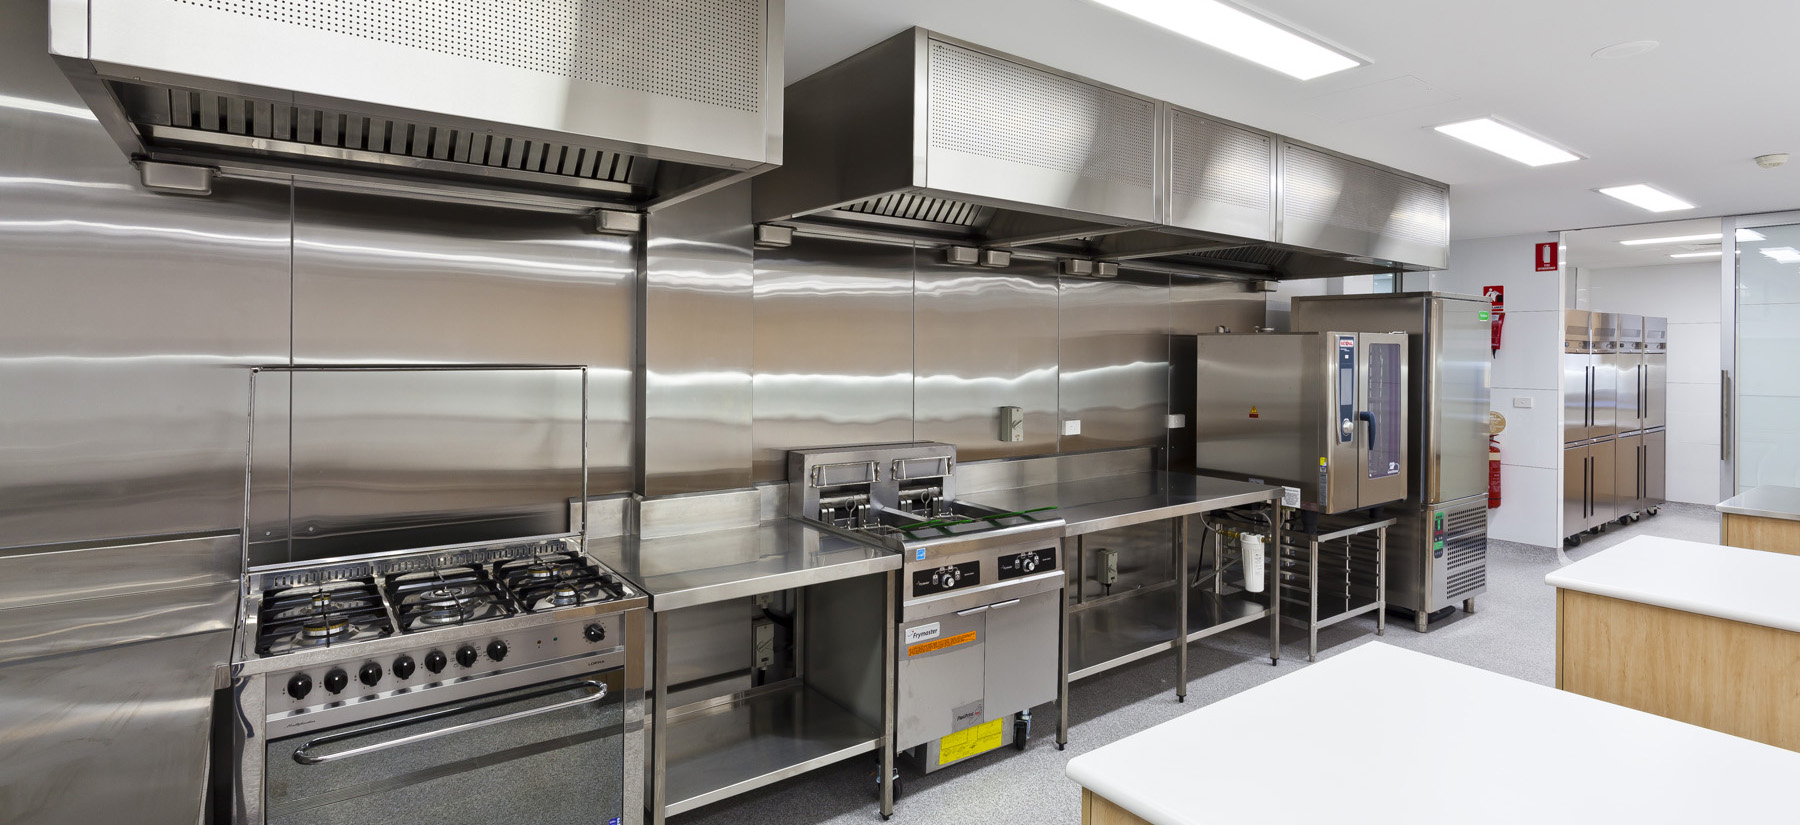 Commercial Kitchen Appliances ~ Difference between commercial residential appliance